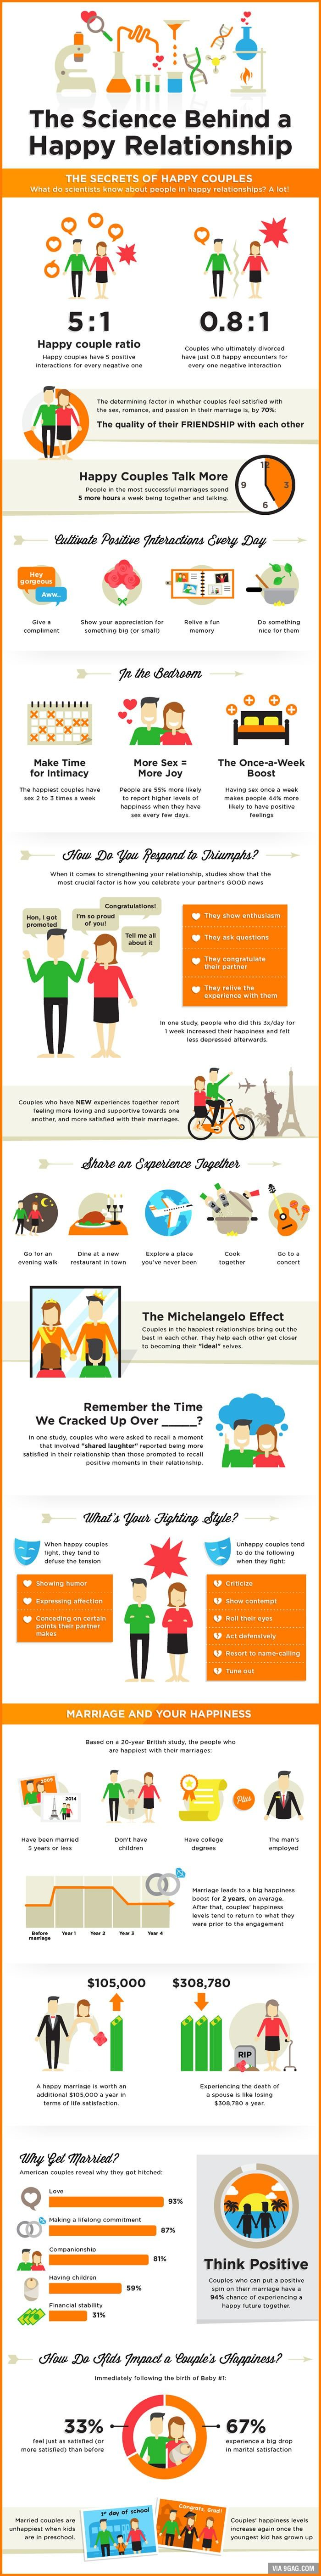 11 best infographic images on pinterest info graphics business infographic science of a happy relationship happy marriage tips is this pro marriage or anti children fandeluxe Choice Image